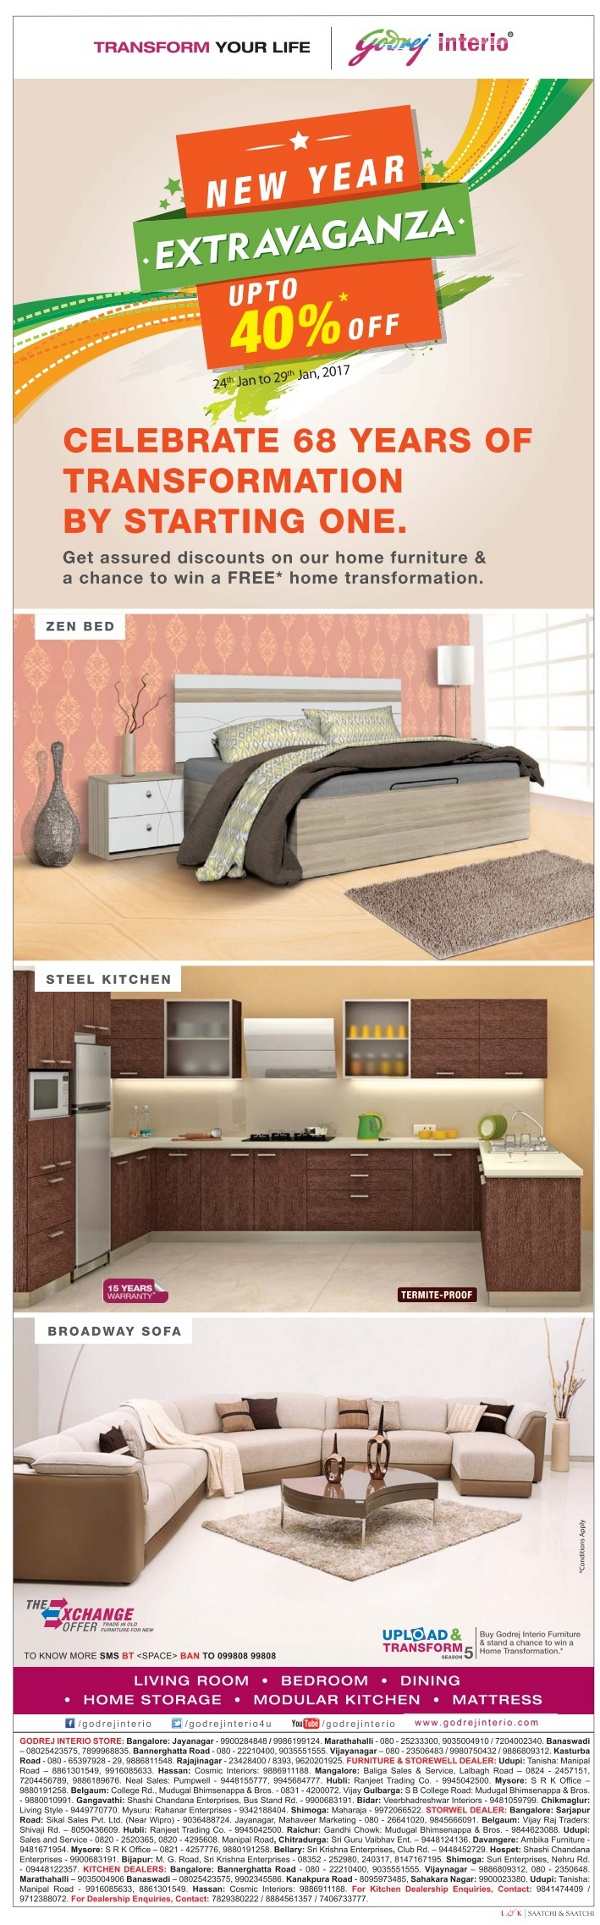 Godrej Interio Home Furniture New Year Offer Bangalore Saleraja